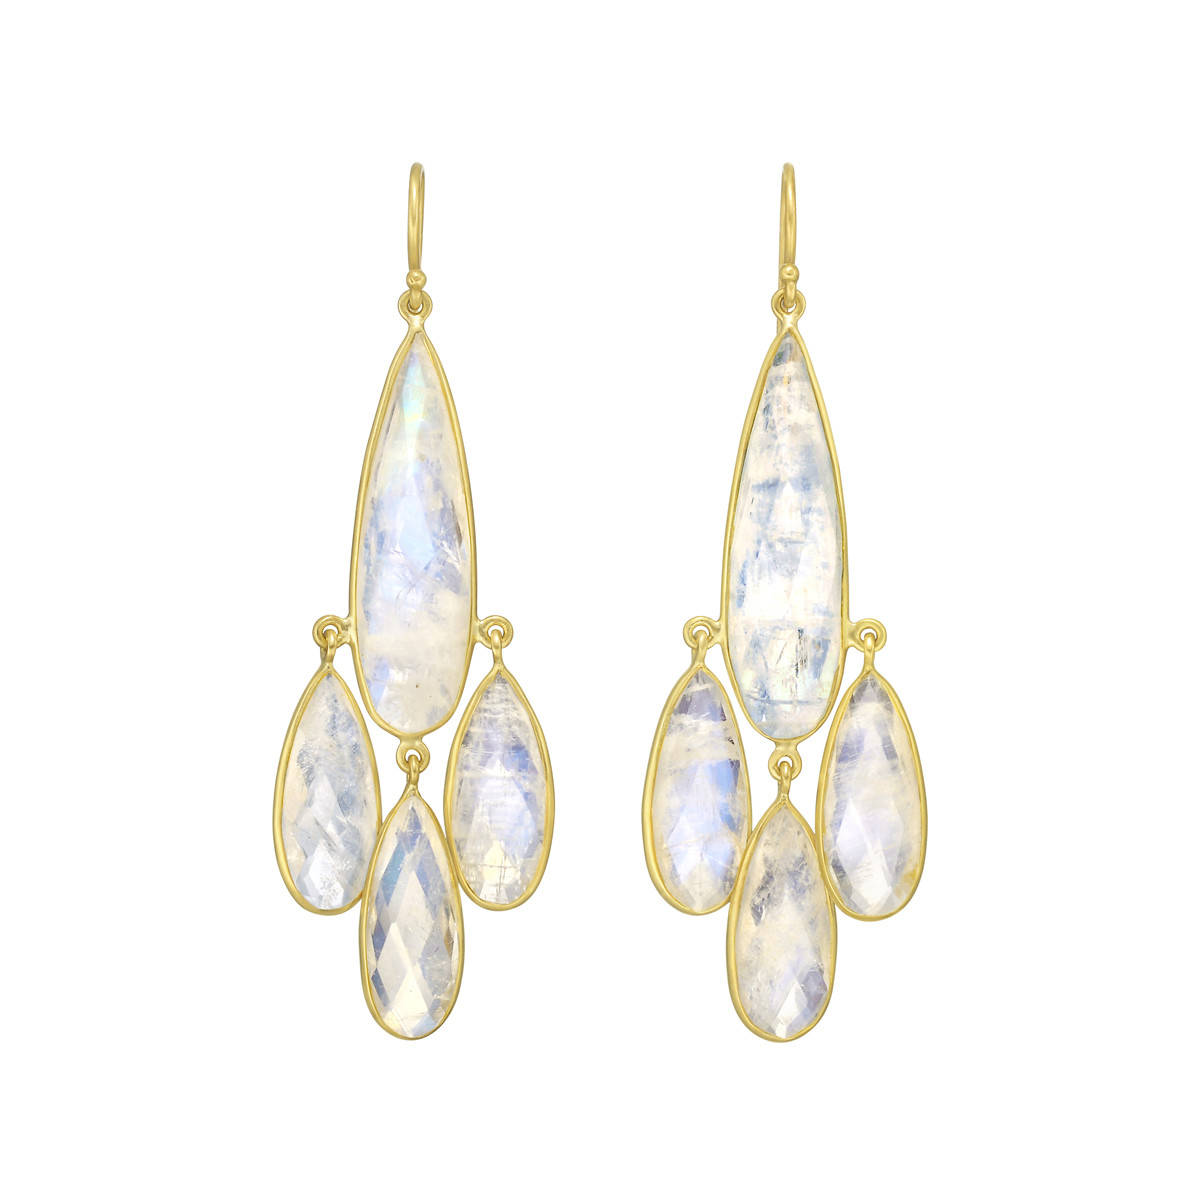 Rainbow Moonstone Chandelier Earrings